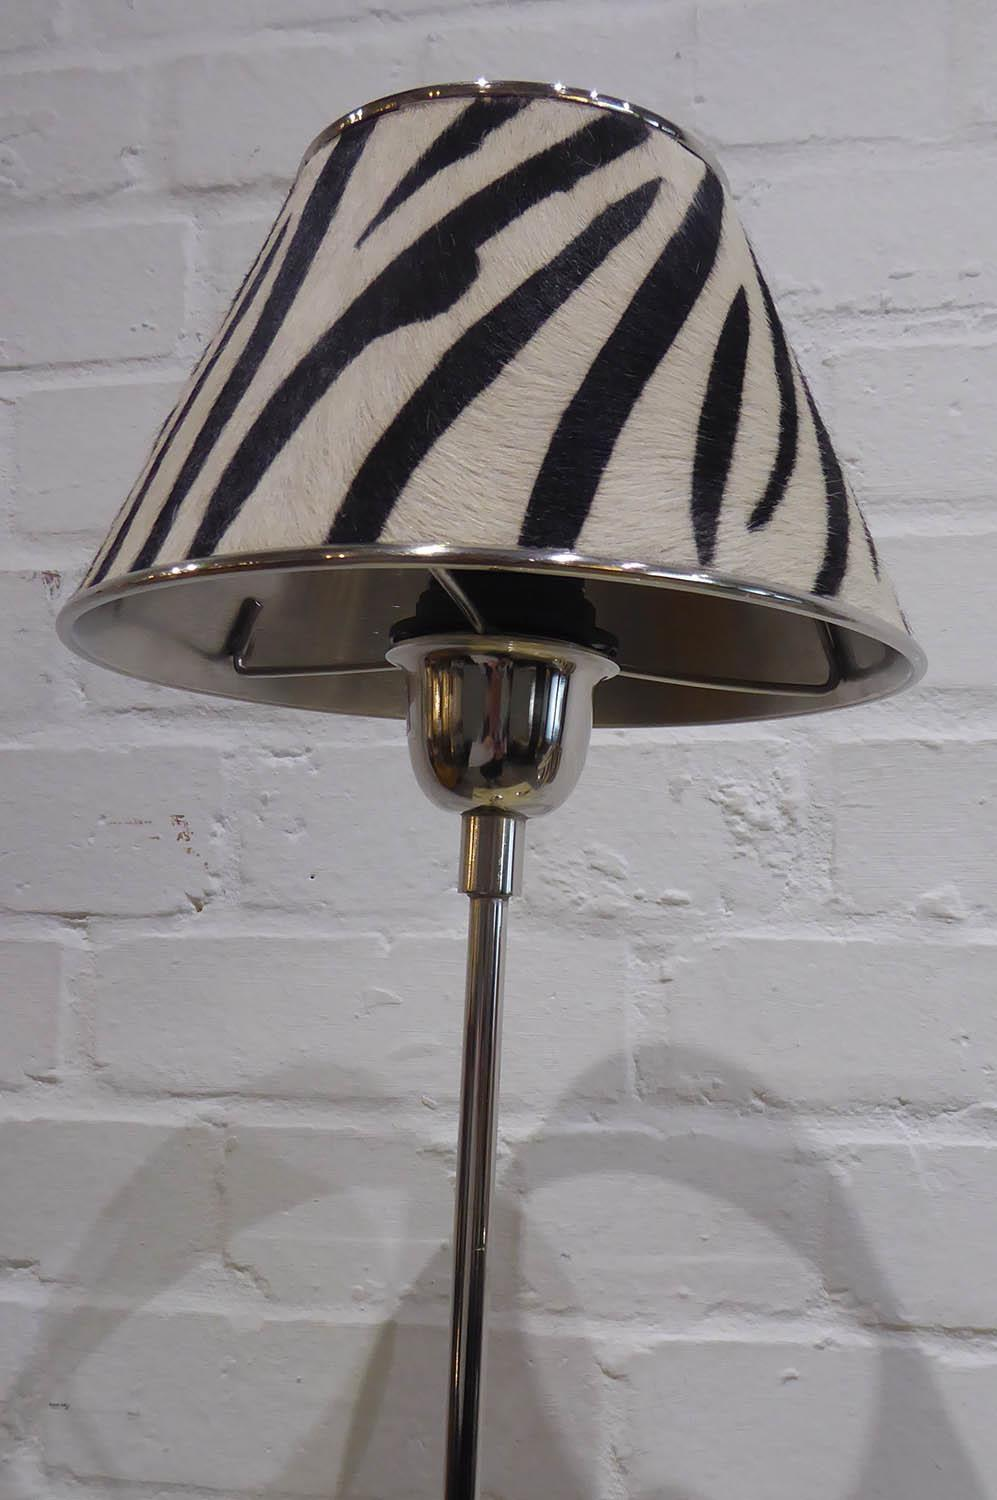 LIBRARY READING LAMPS, a pair, faux zebra skin shades, 89cm at tallest approx. (2) - Image 2 of 3